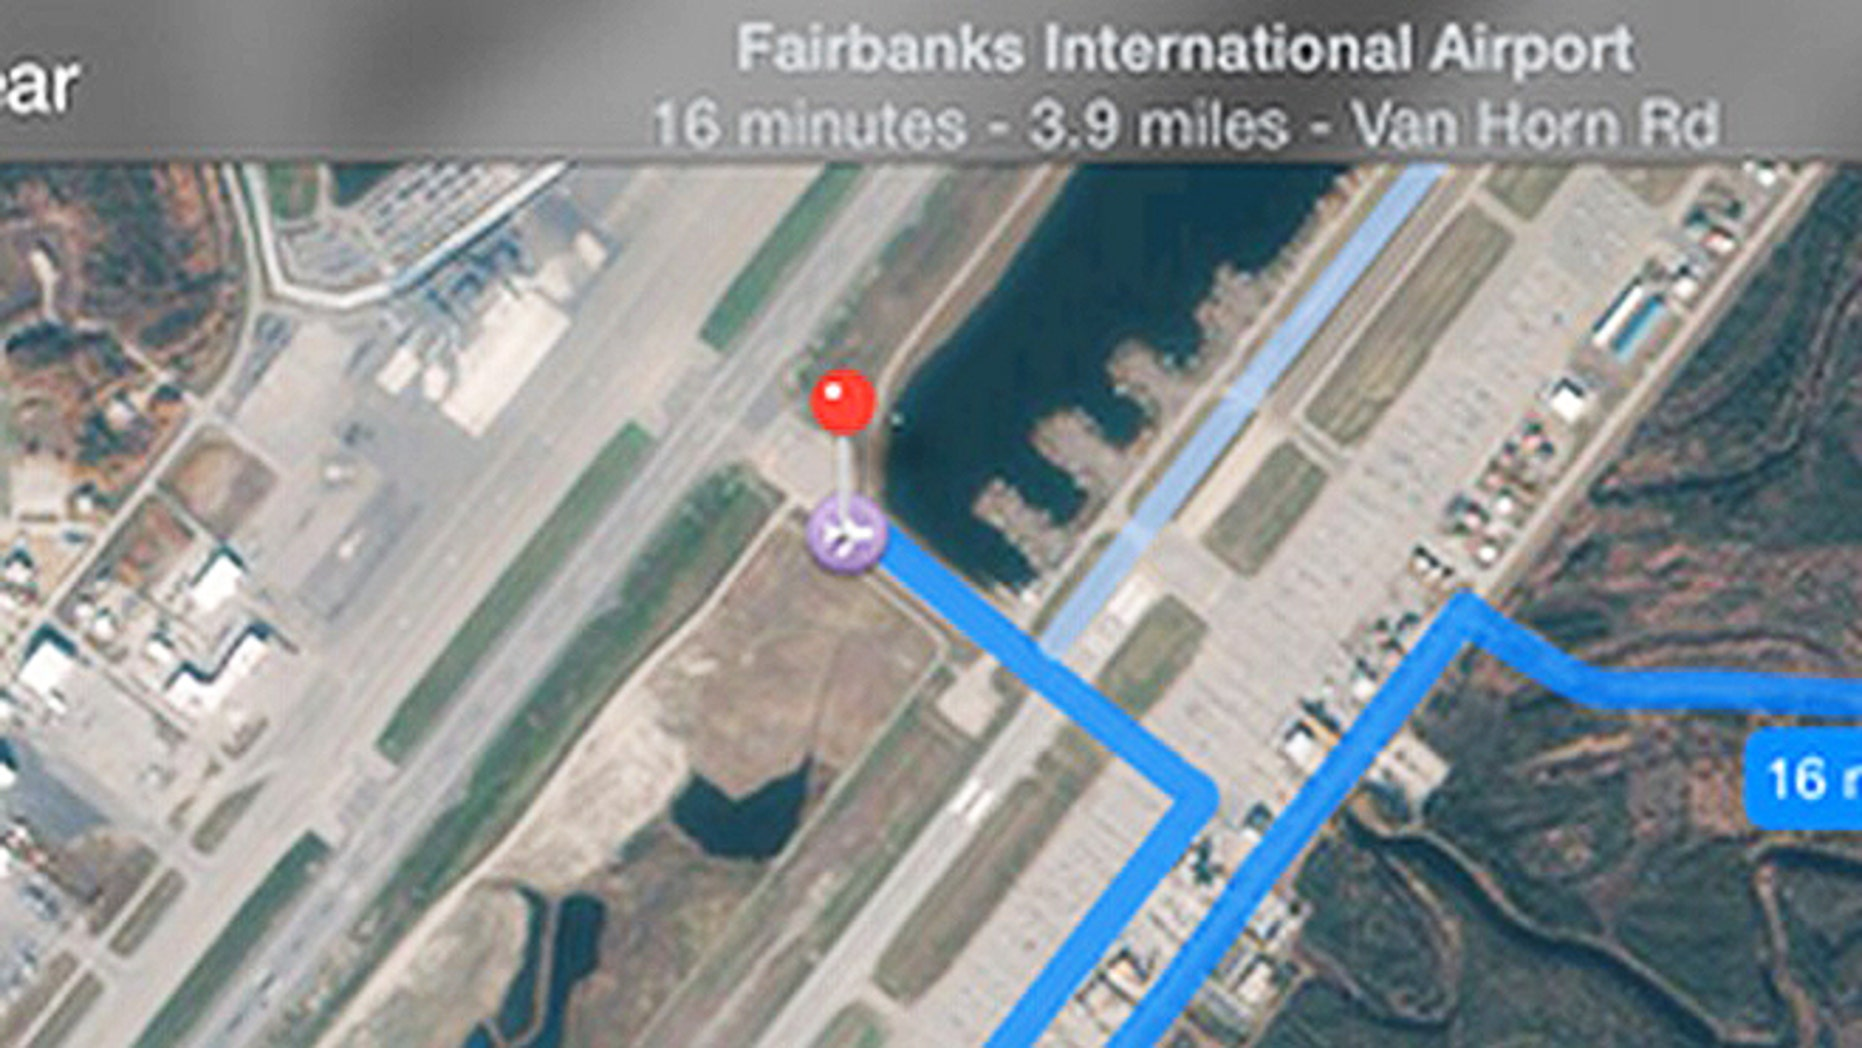 A glitch in the Apple Maps app guides people up to a runway at a major Alaska airport instead of sending them on the proper route to the terminal, an airport official said.